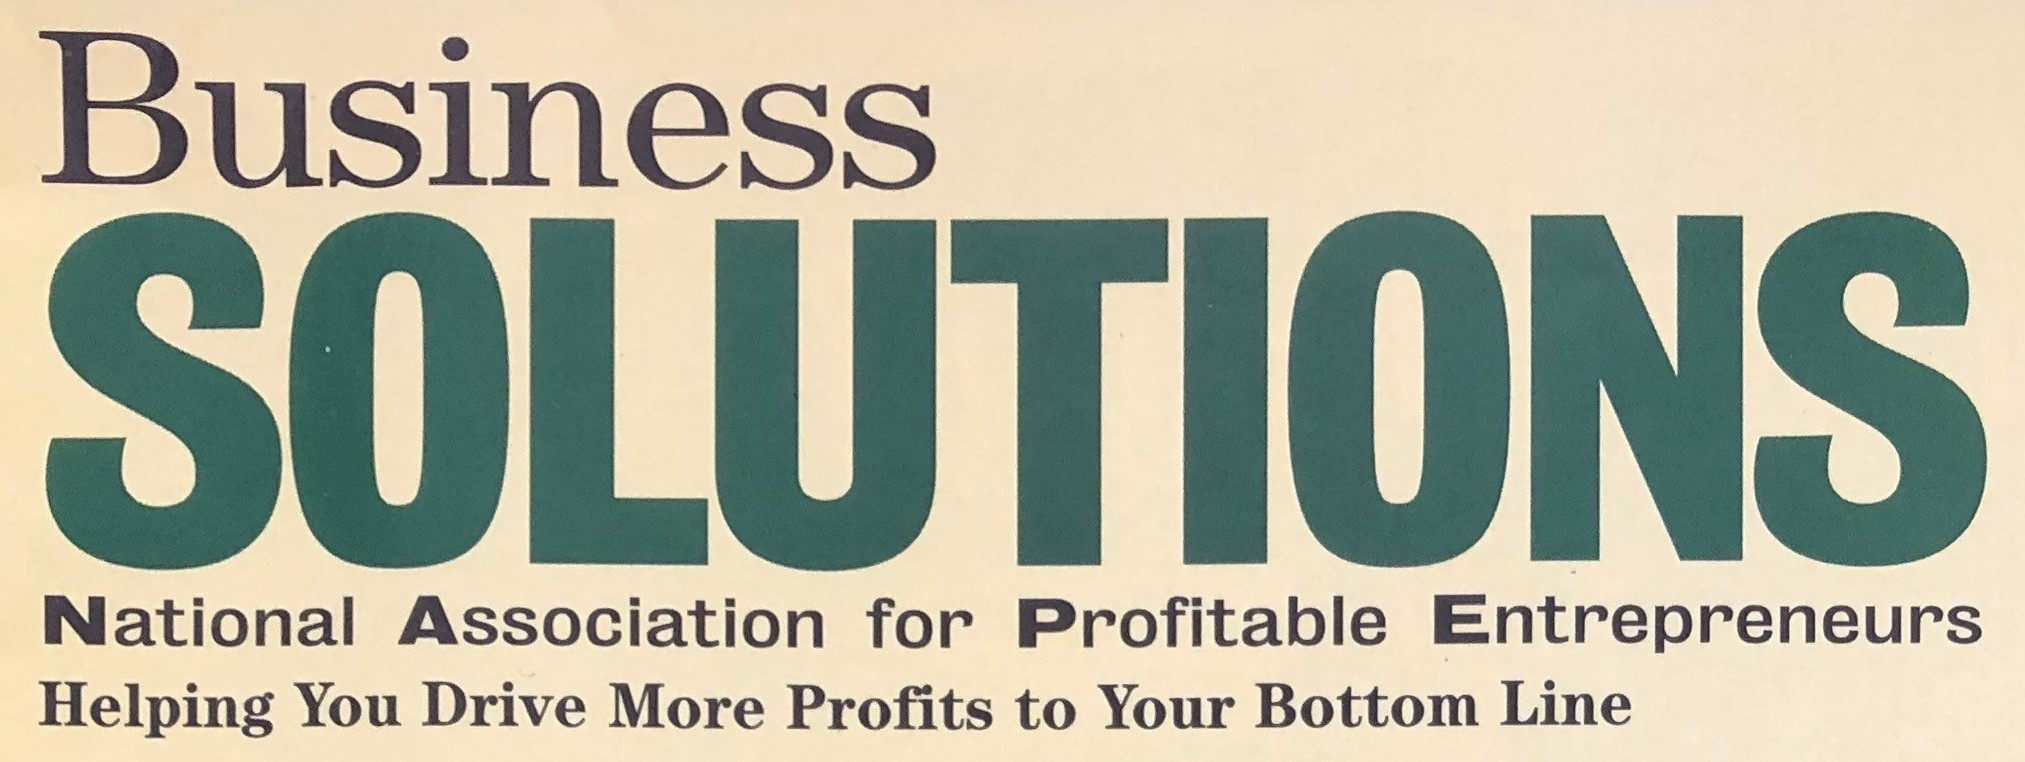 businesssolutionslogo